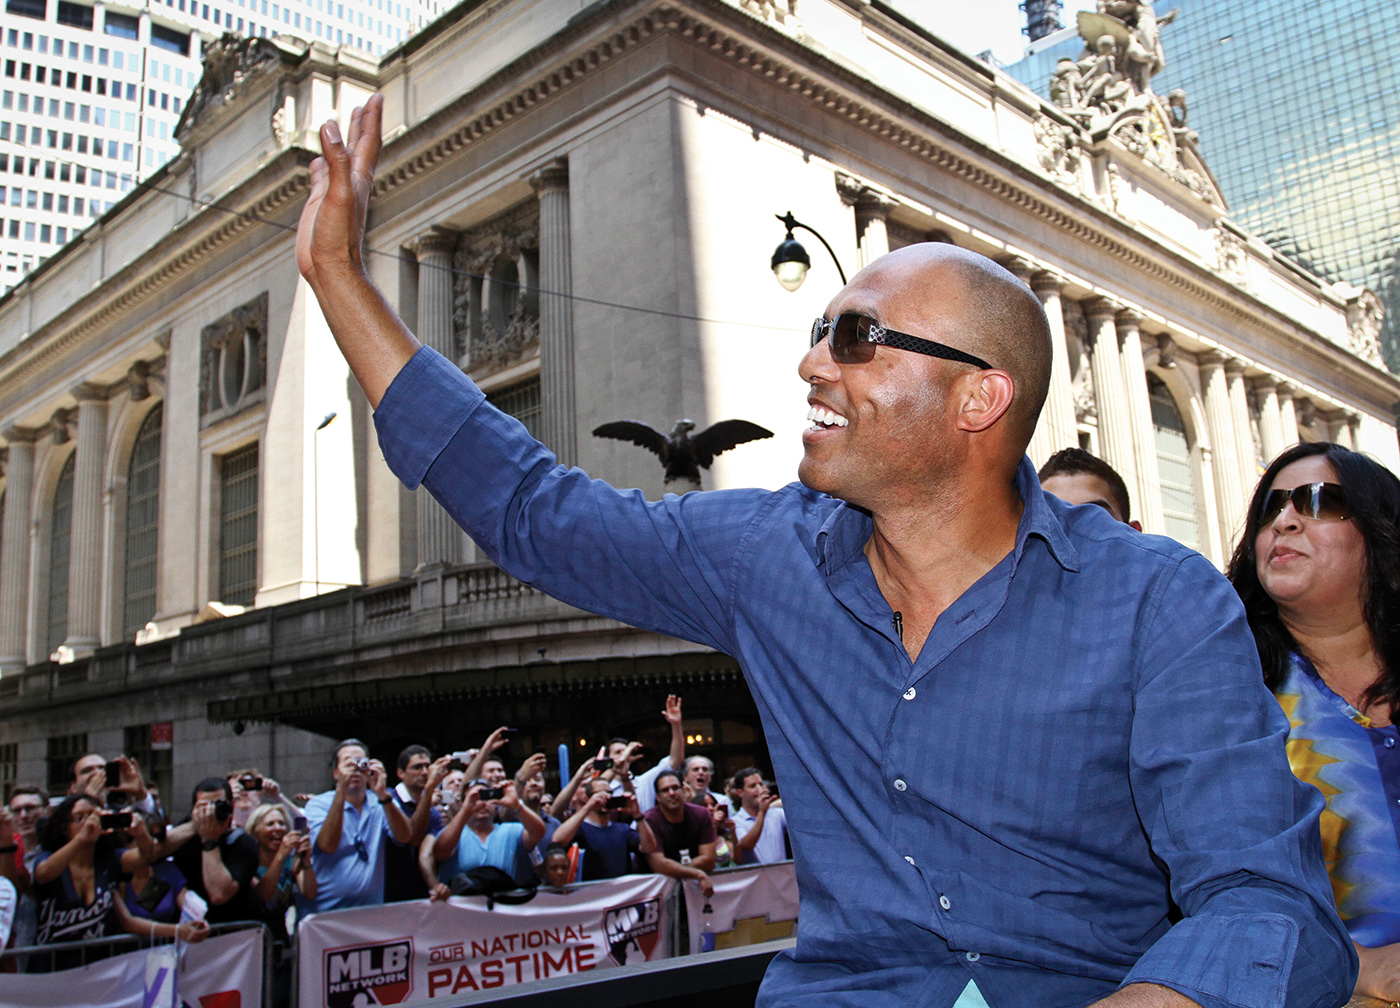 New York Yankees pitcher Mariano Rivera, the MVP of the 2013 MLB All-Star Game,  was one of many All-Stars to participate in July's MLB All-Star Parade in Manhattan. Image courtesy of Jon Gerberg/AP Images